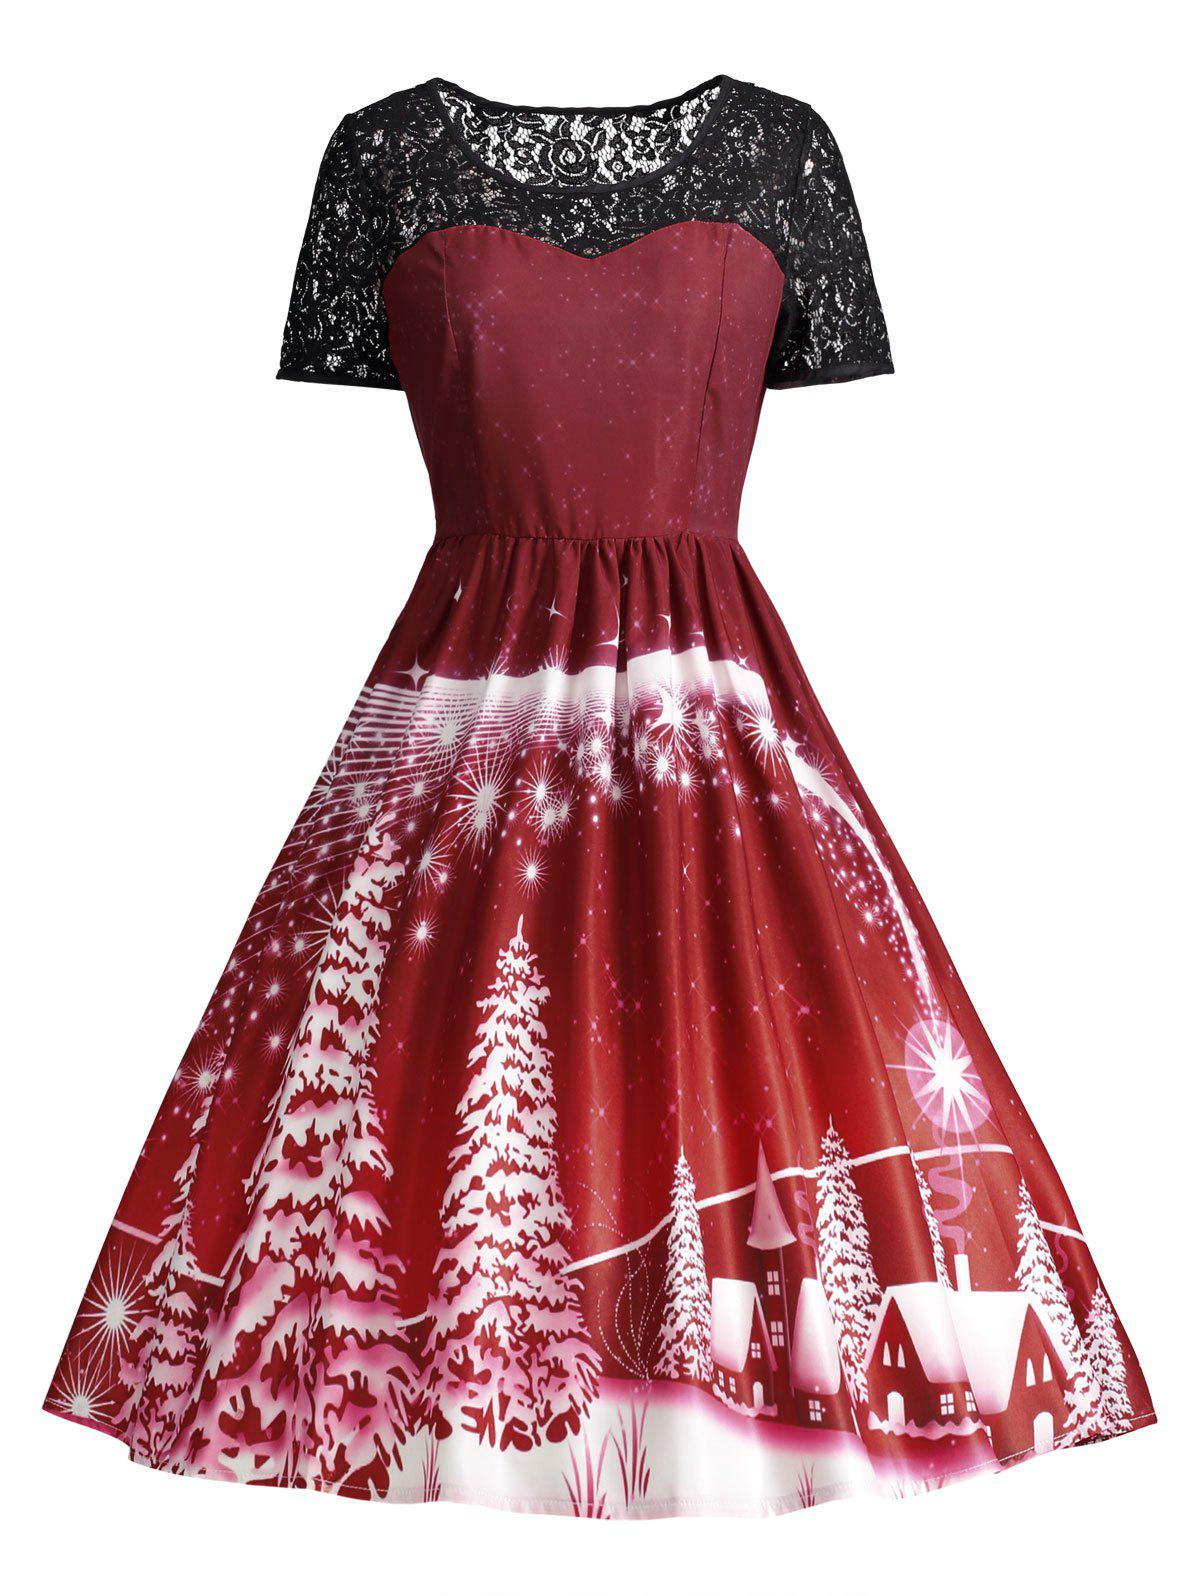 Ugly Christmas Party Lace Trim Vintage DressWOMEN<br><br>Size: S; Color: DARK RED; Style: Cute; Material: Polyester,Spandex; Silhouette: A-Line; Dresses Length: Knee-Length; Neckline: Round Collar; Sleeve Length: Short Sleeves; Pattern Type: Others; With Belt: No; Season: Fall,Spring; Weight: 0.3150kg; Package Contents: 1 x Dress;